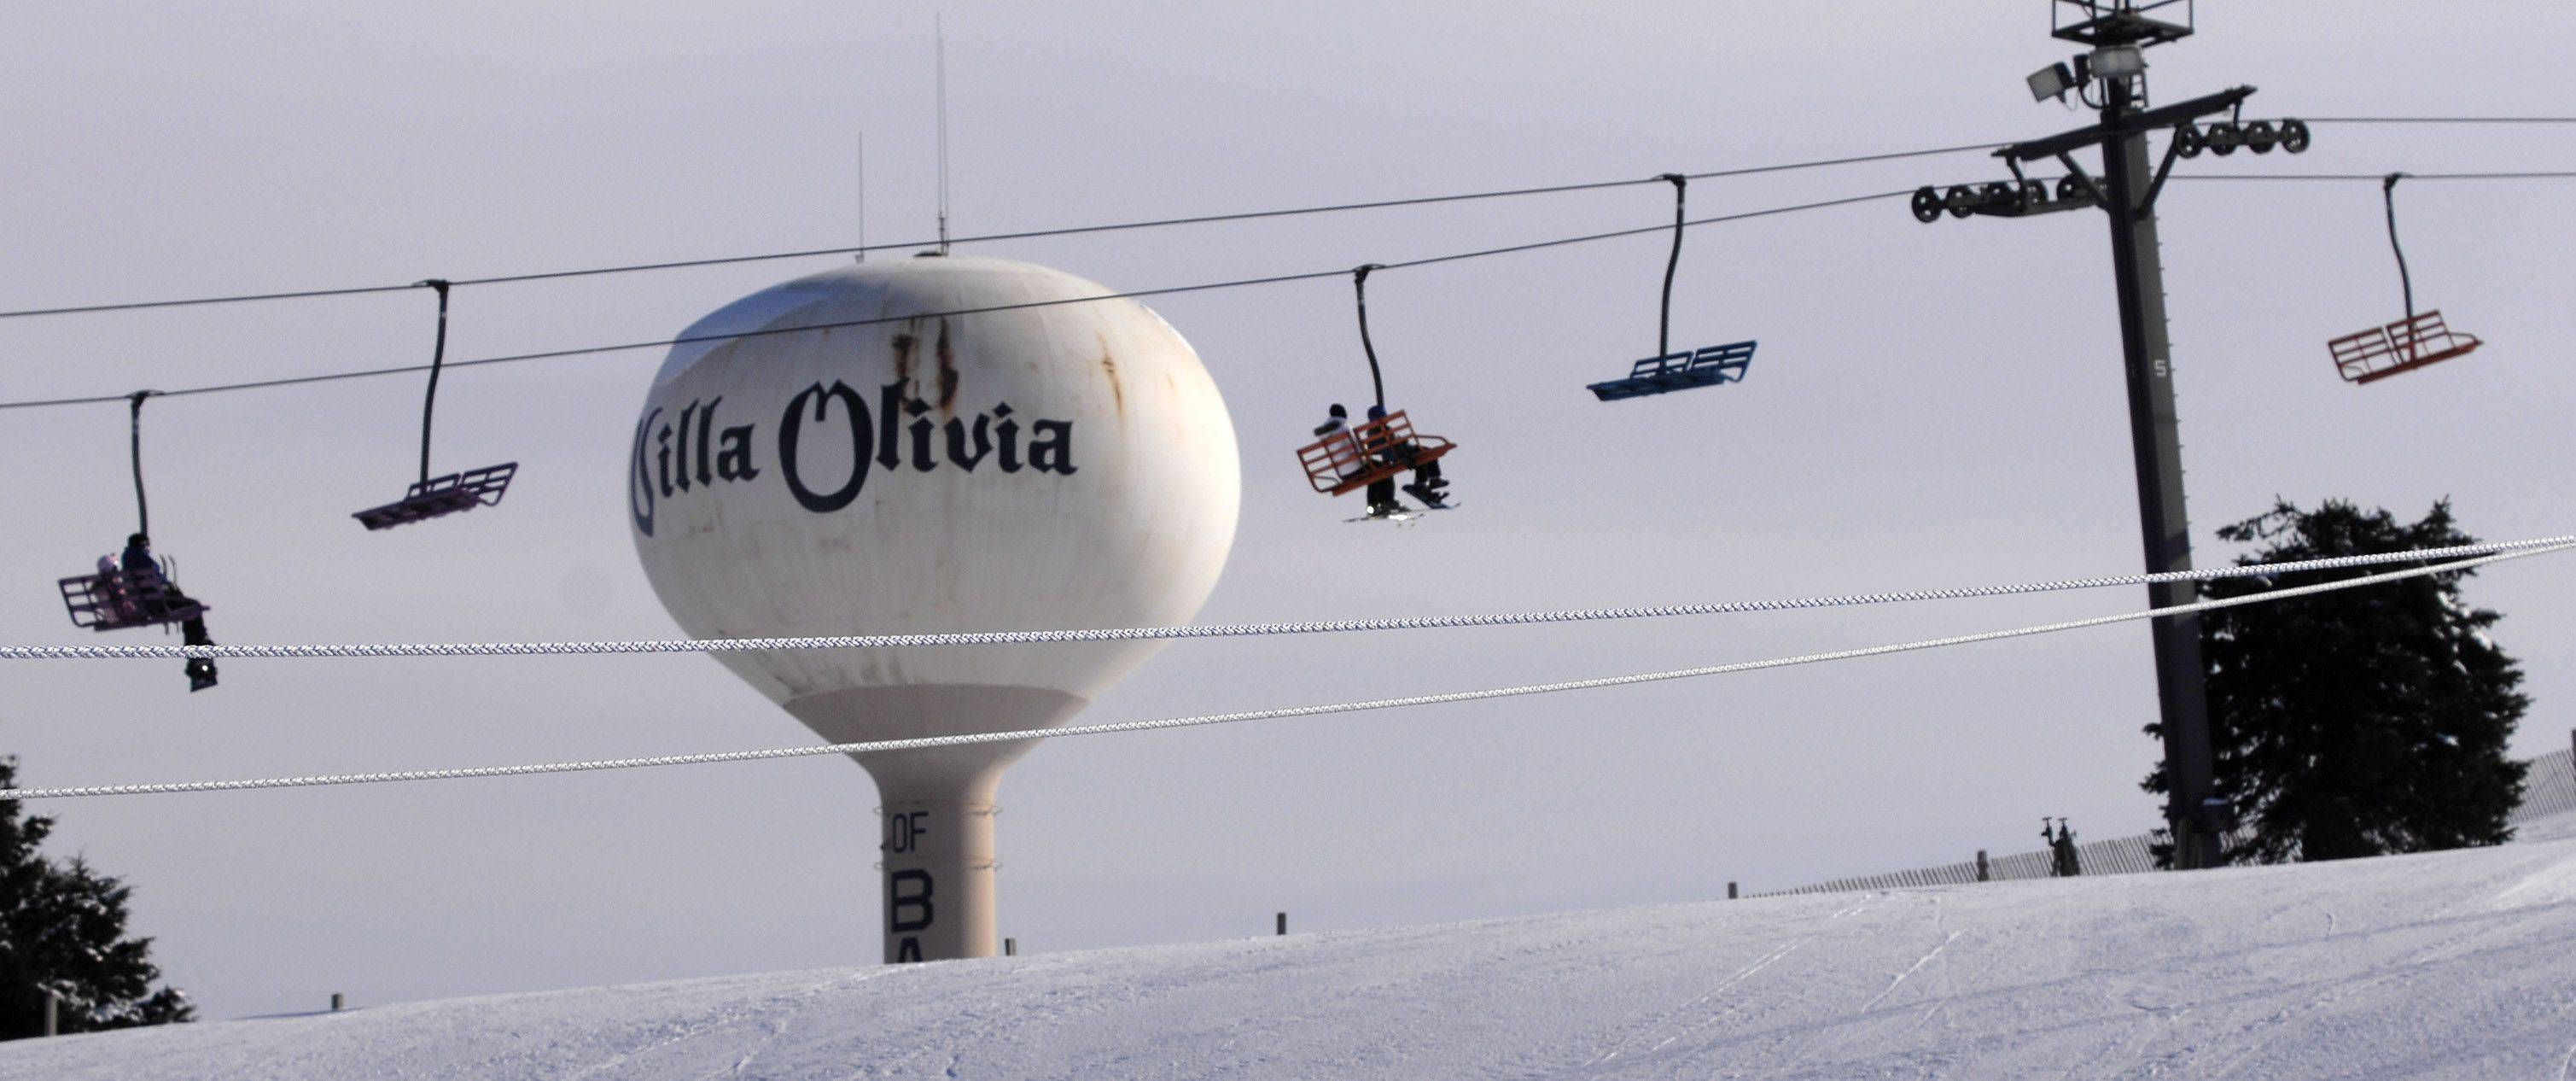 Skiing, snow boarding and tubing at Villa Olivia Country Club could soon be park district activities if voters next week support an $18 million bond issue to help the district buy the 138-acre site.